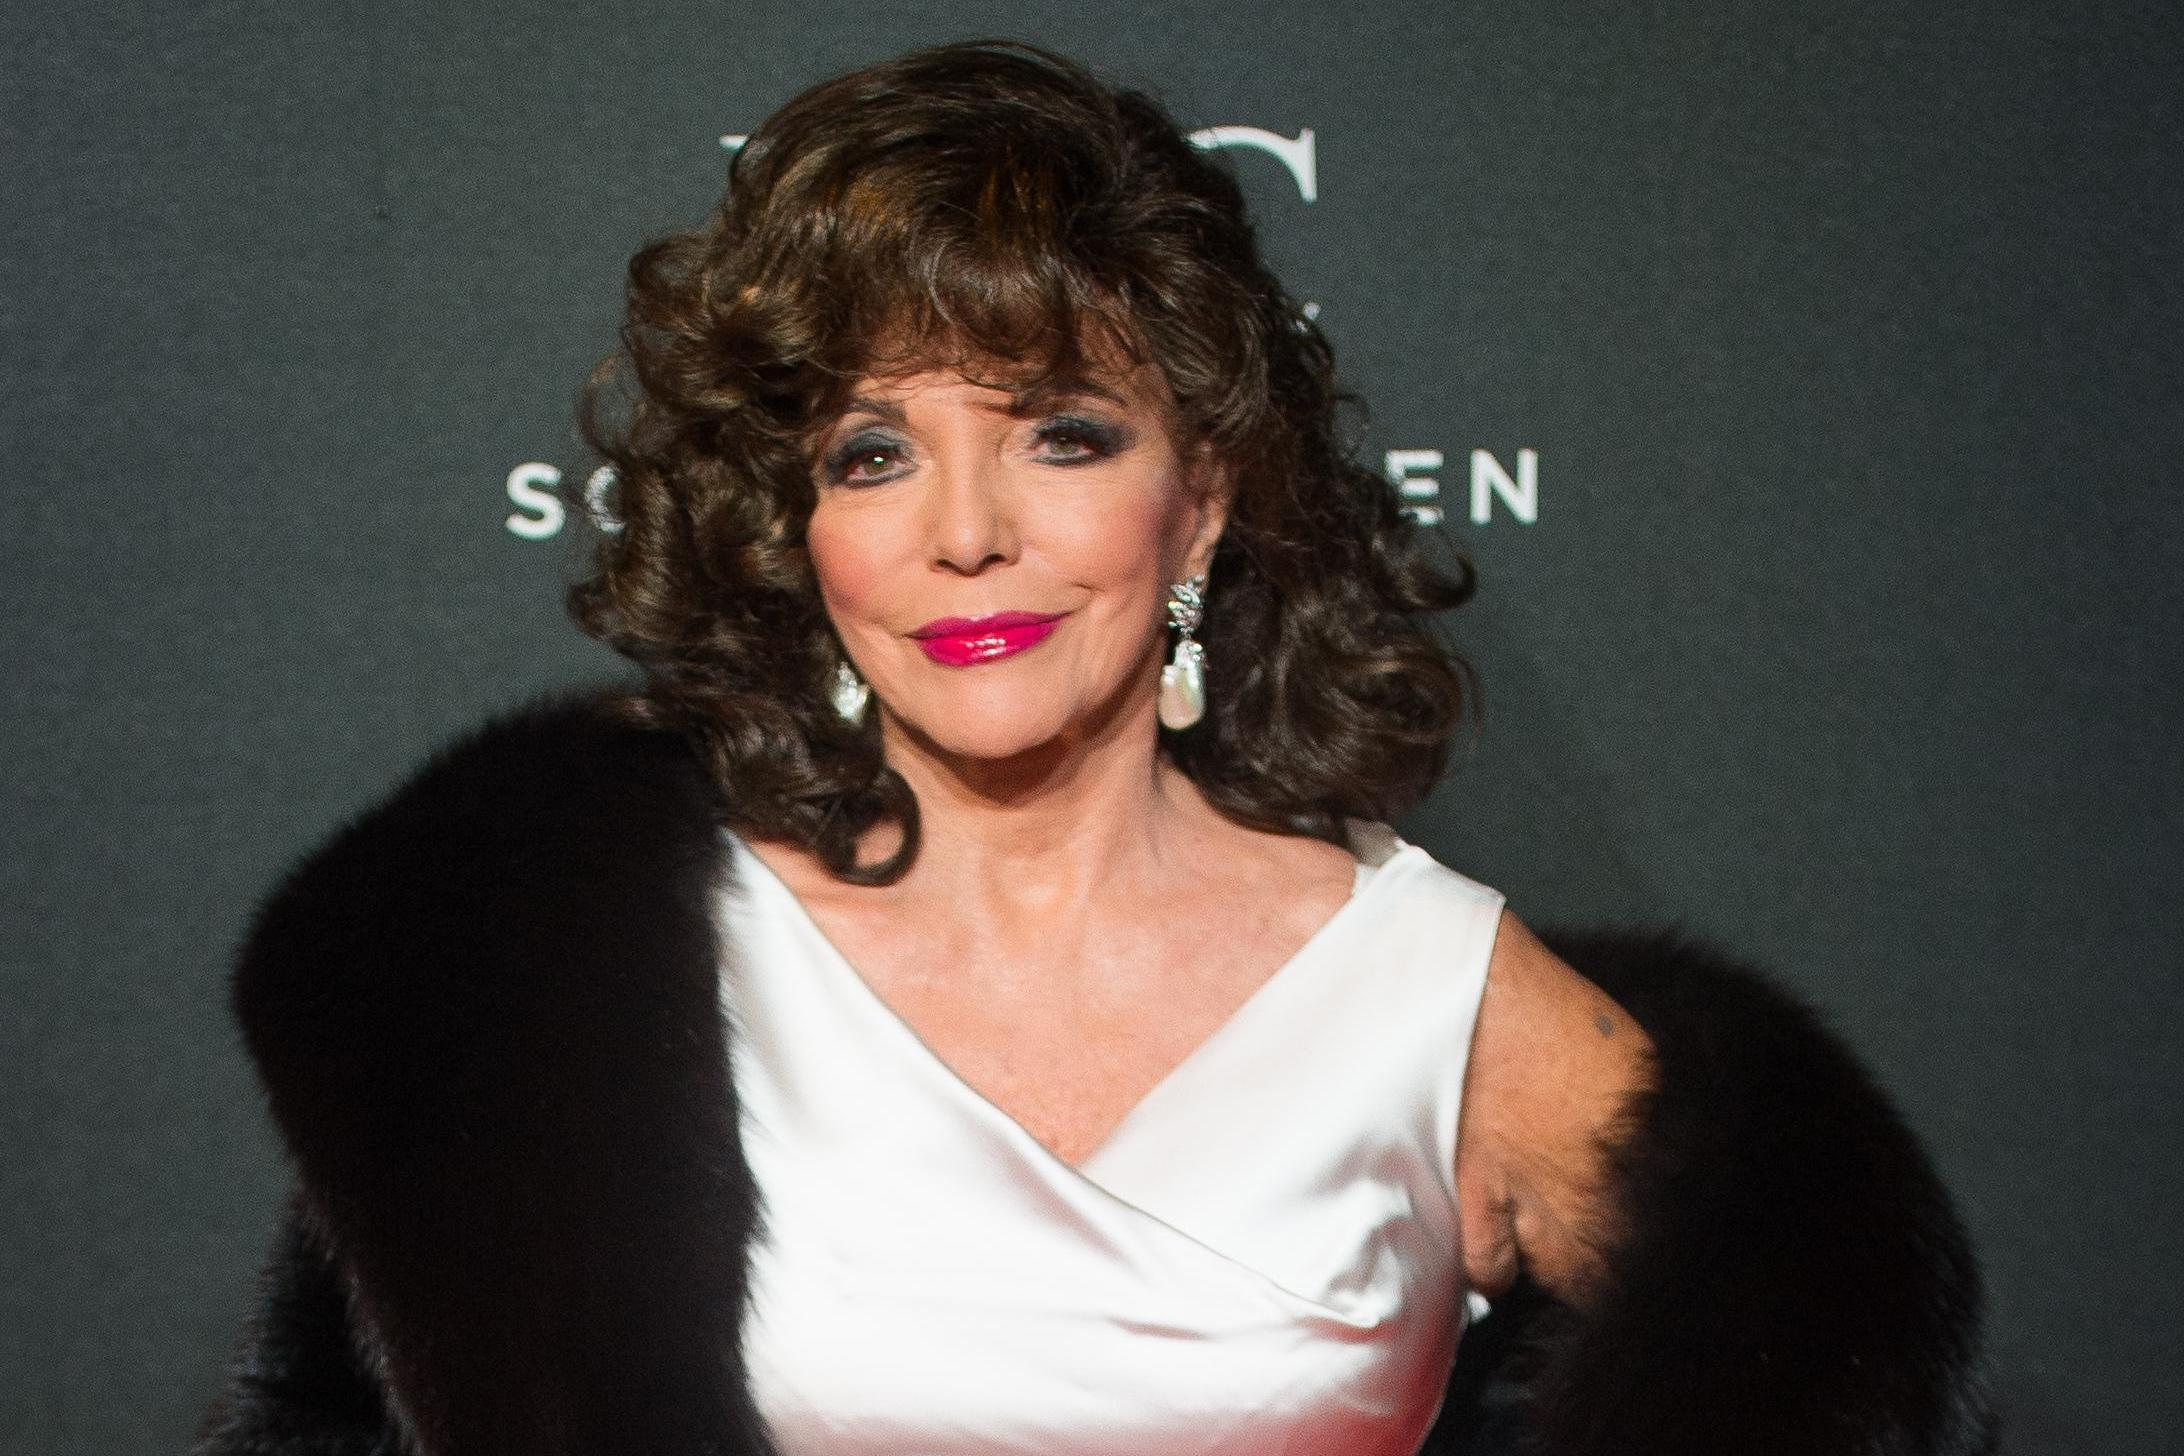 rooz Who is Joan Collins? Benidorm actress who plays Crystal Hennessy-Vass and The Time of Their Lives and Dynasty star image